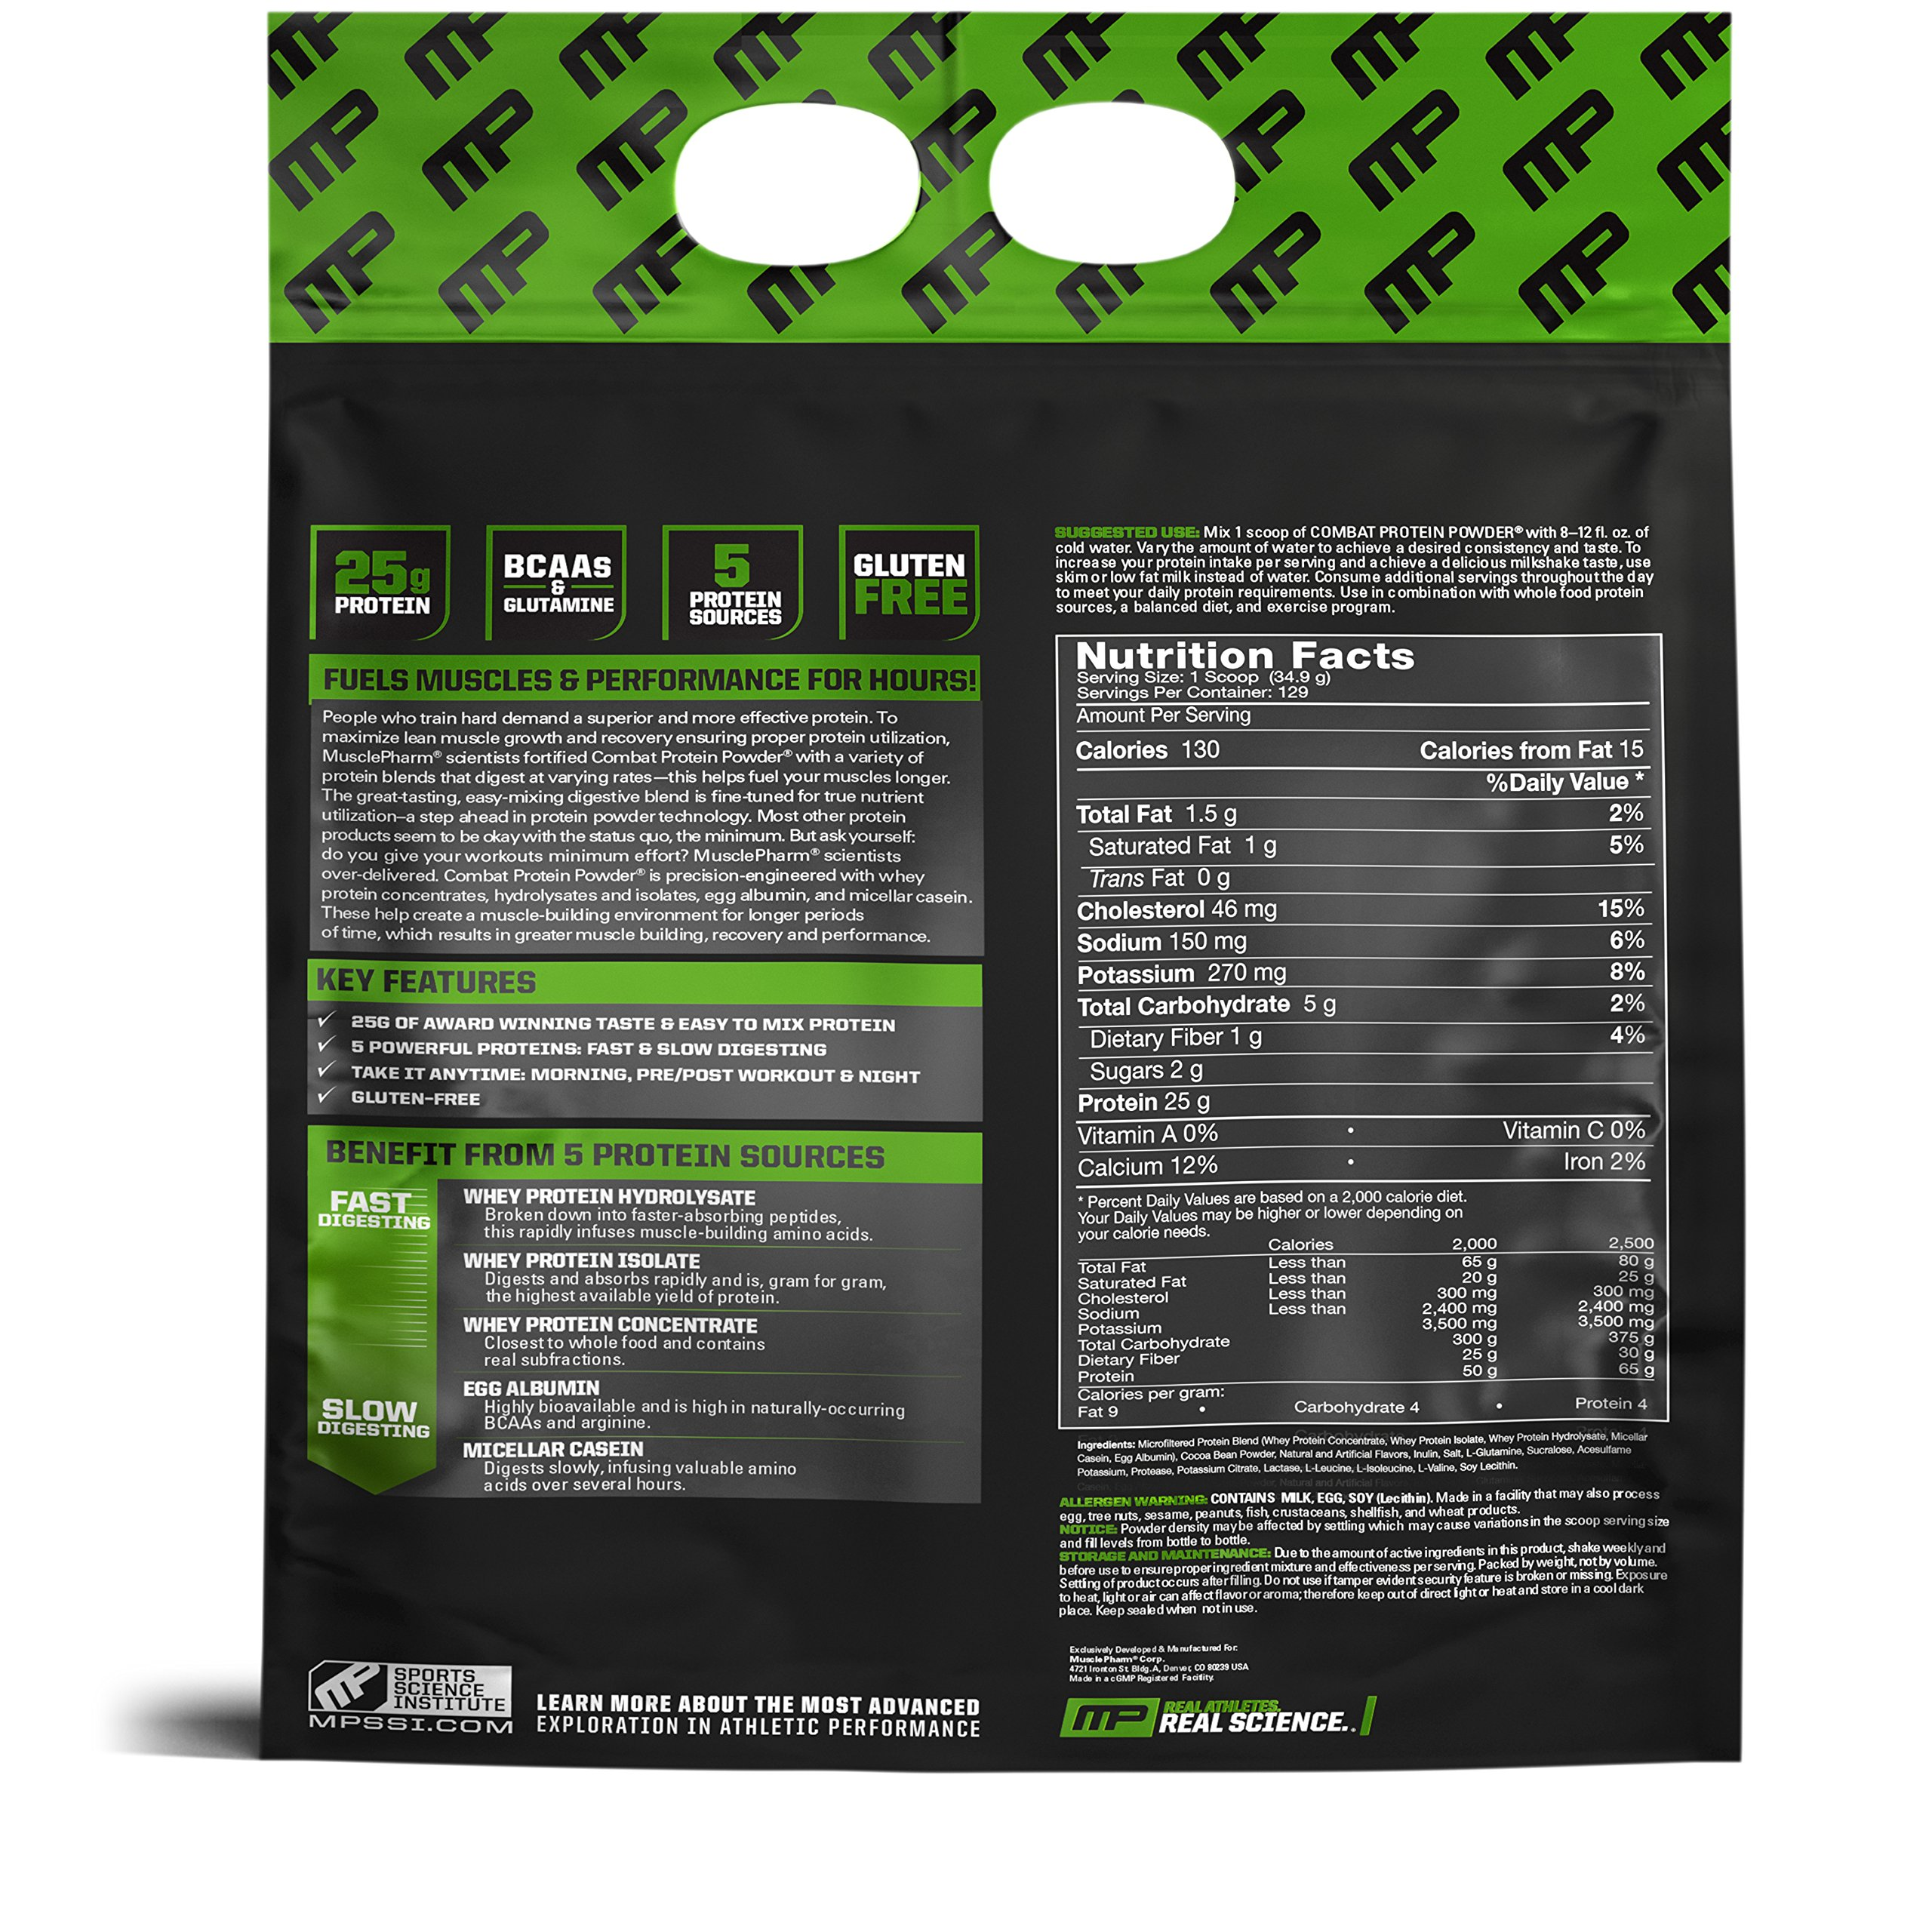 MusclePharm Combat Protein Powder, Essential Whey Protein Powder, Isolate Whey Protein, Casein and Egg Protein with BCAAs and Glutamine for Recovery, Chocolate Milk, 10-Pound, 129 Servings by Muscle Pharm (Image #2)